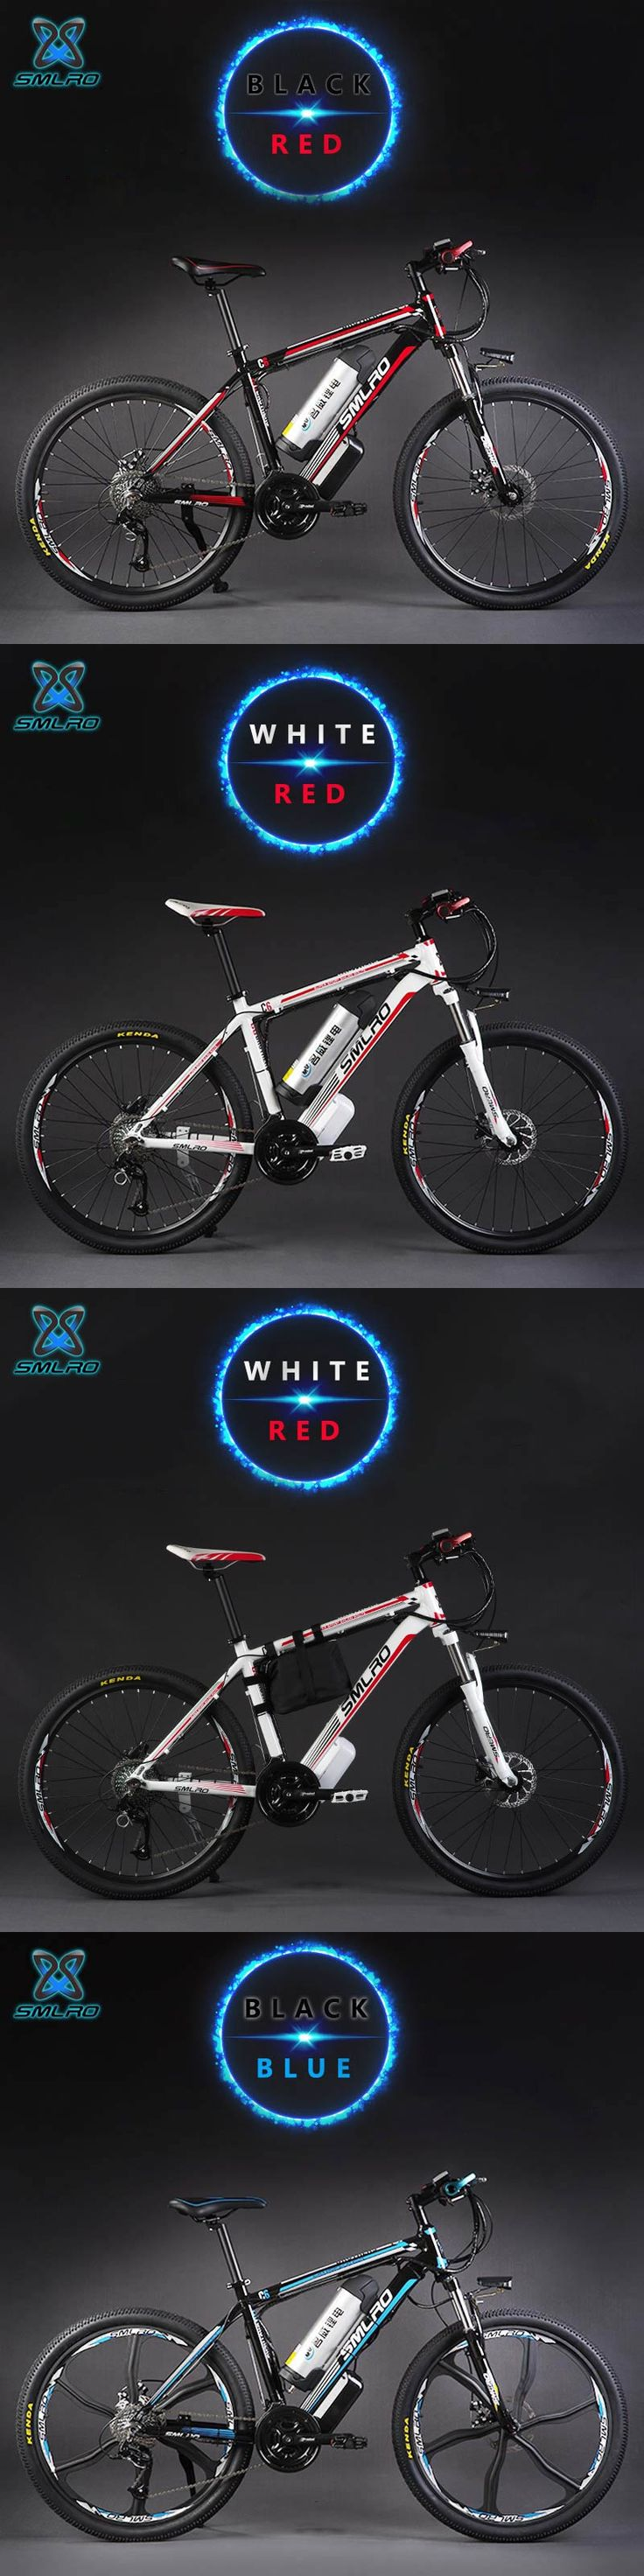 26-inch aluminum alloy oil brake 27-speed electric mountain bike 48V lithium battery smart electric bicycles 500W motor-assisted